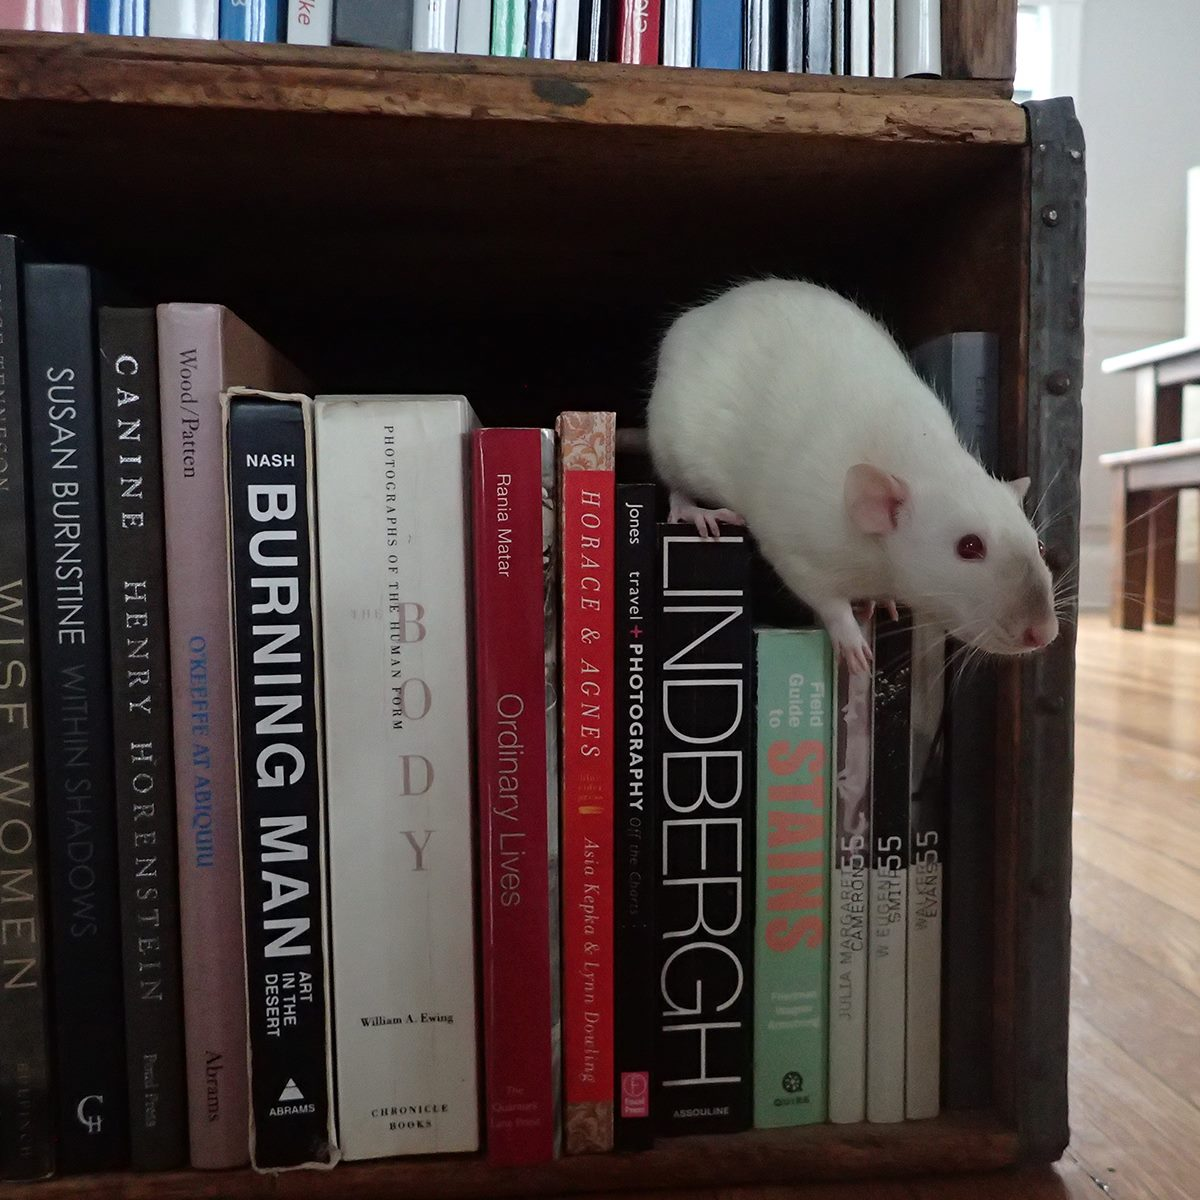 Silke Hase 's pet rats sniffs out the good titles in her photobook library.